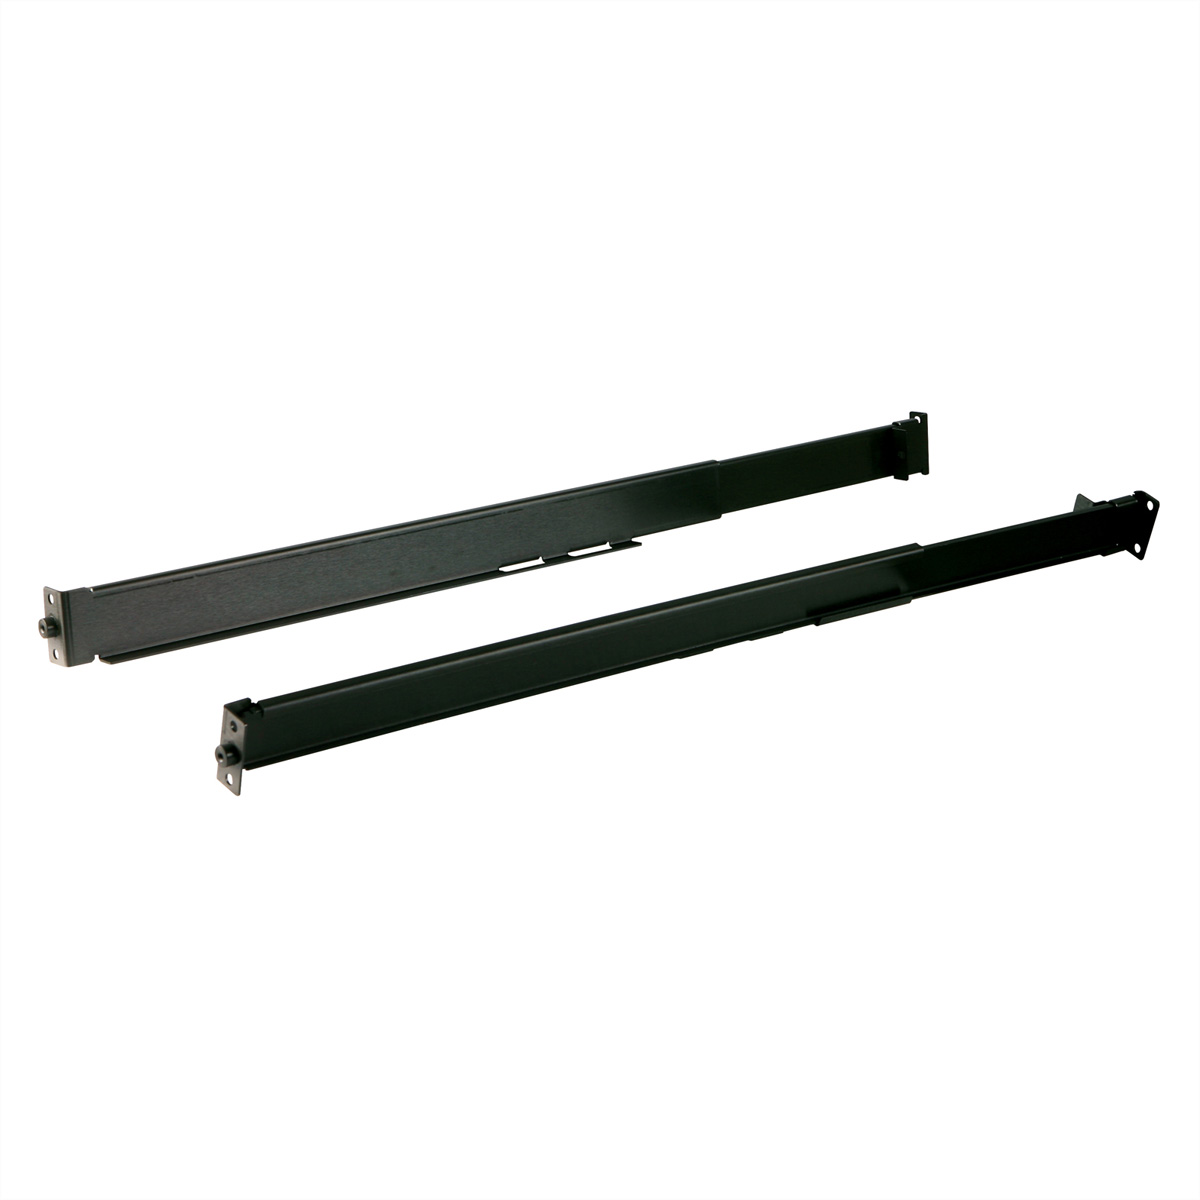 ATEN 2x-012G Easy Installation Rack Mount Kit Long